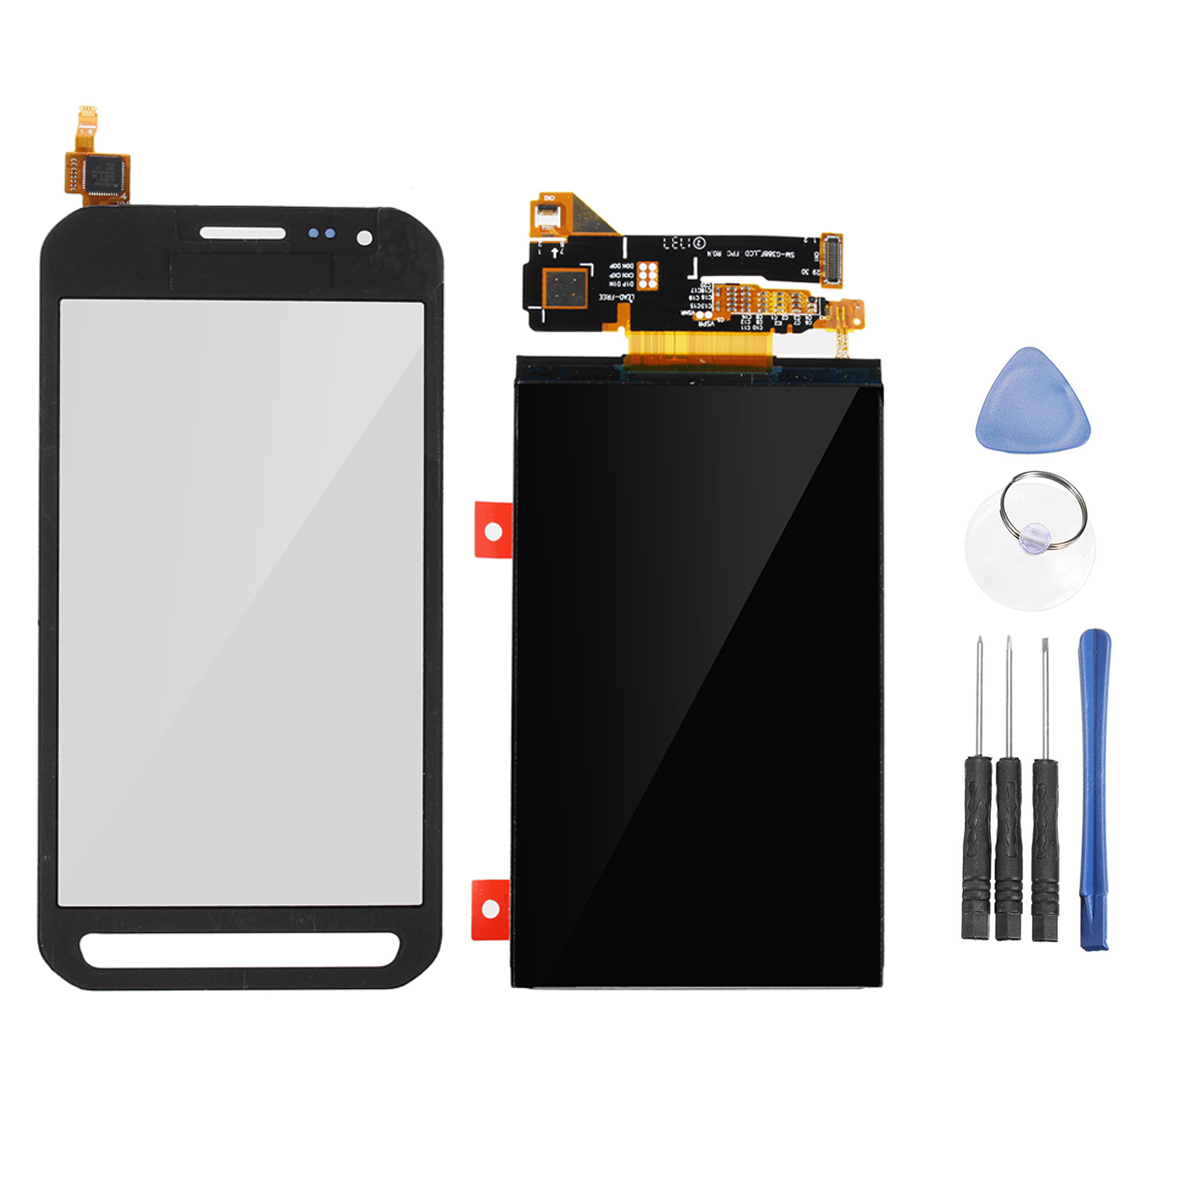 LCD Touch Screen Digitizer Assembly + Repair Tools for